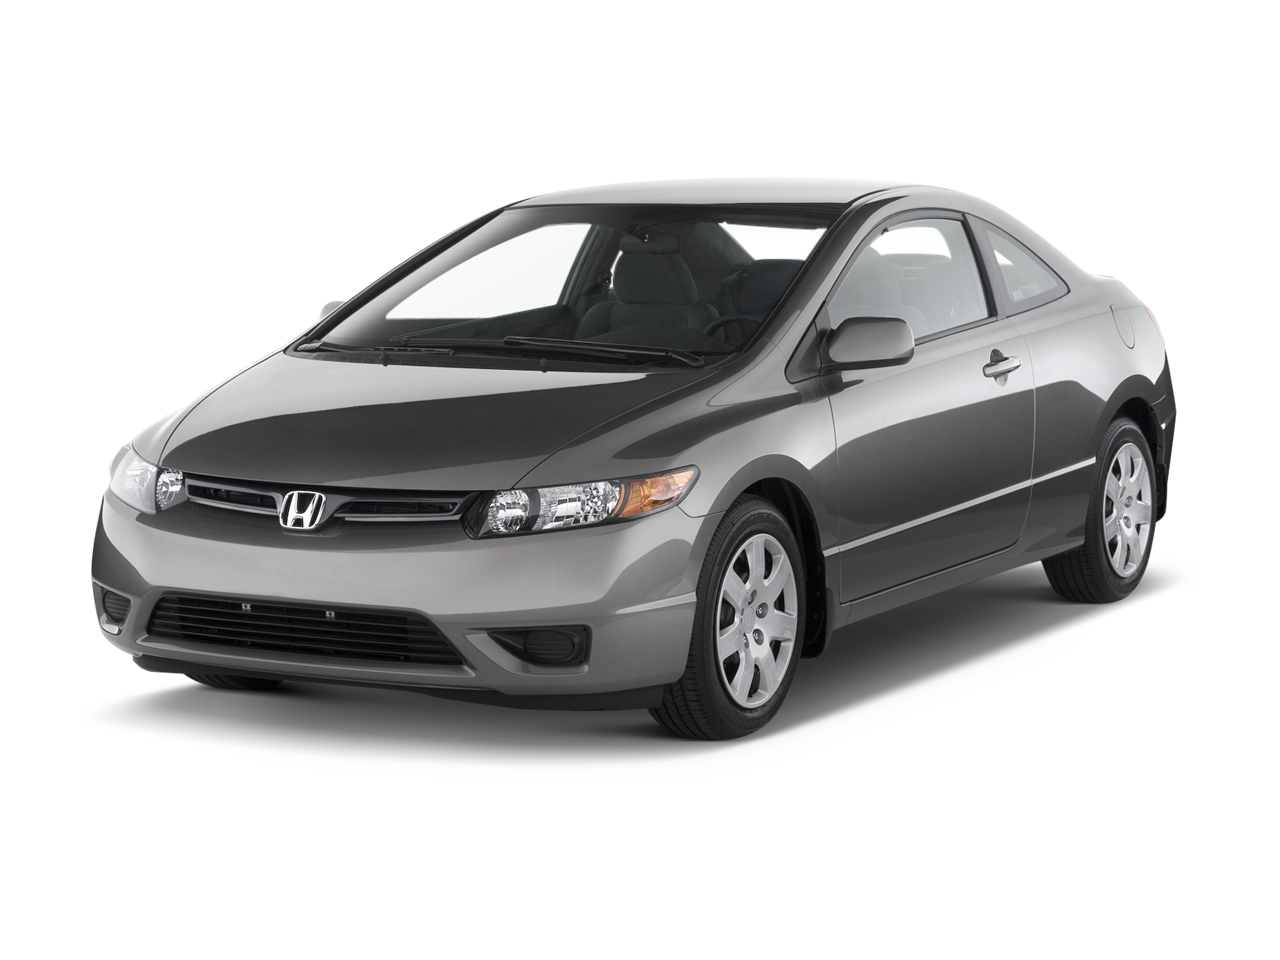 honda civic viii coupe 2009 models #12